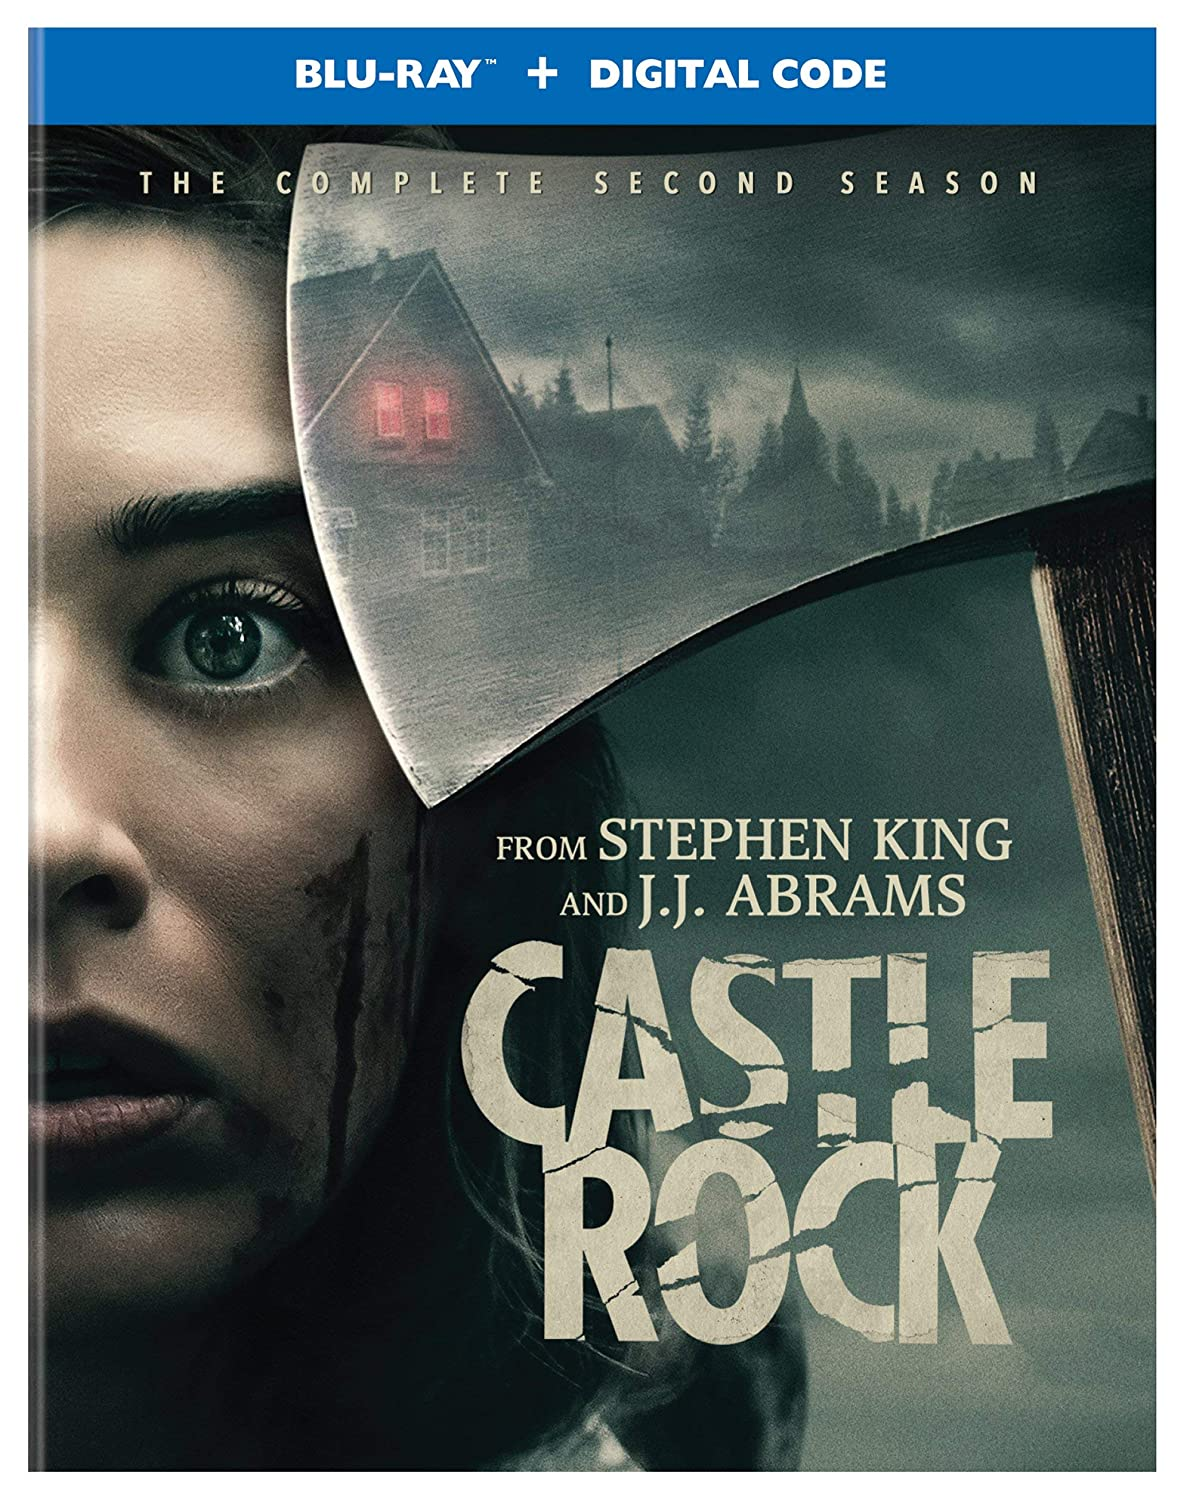 Castle Rock The Complete Second Season Blu Ray Digital Scott Glenn Stephen King Andre Holland Lizzy Caplan Paul Sparks Melanie Lynskey Yusra Warsama Bill Skarsgård Jane Levy Barkhad Abdi Sissy Spacek